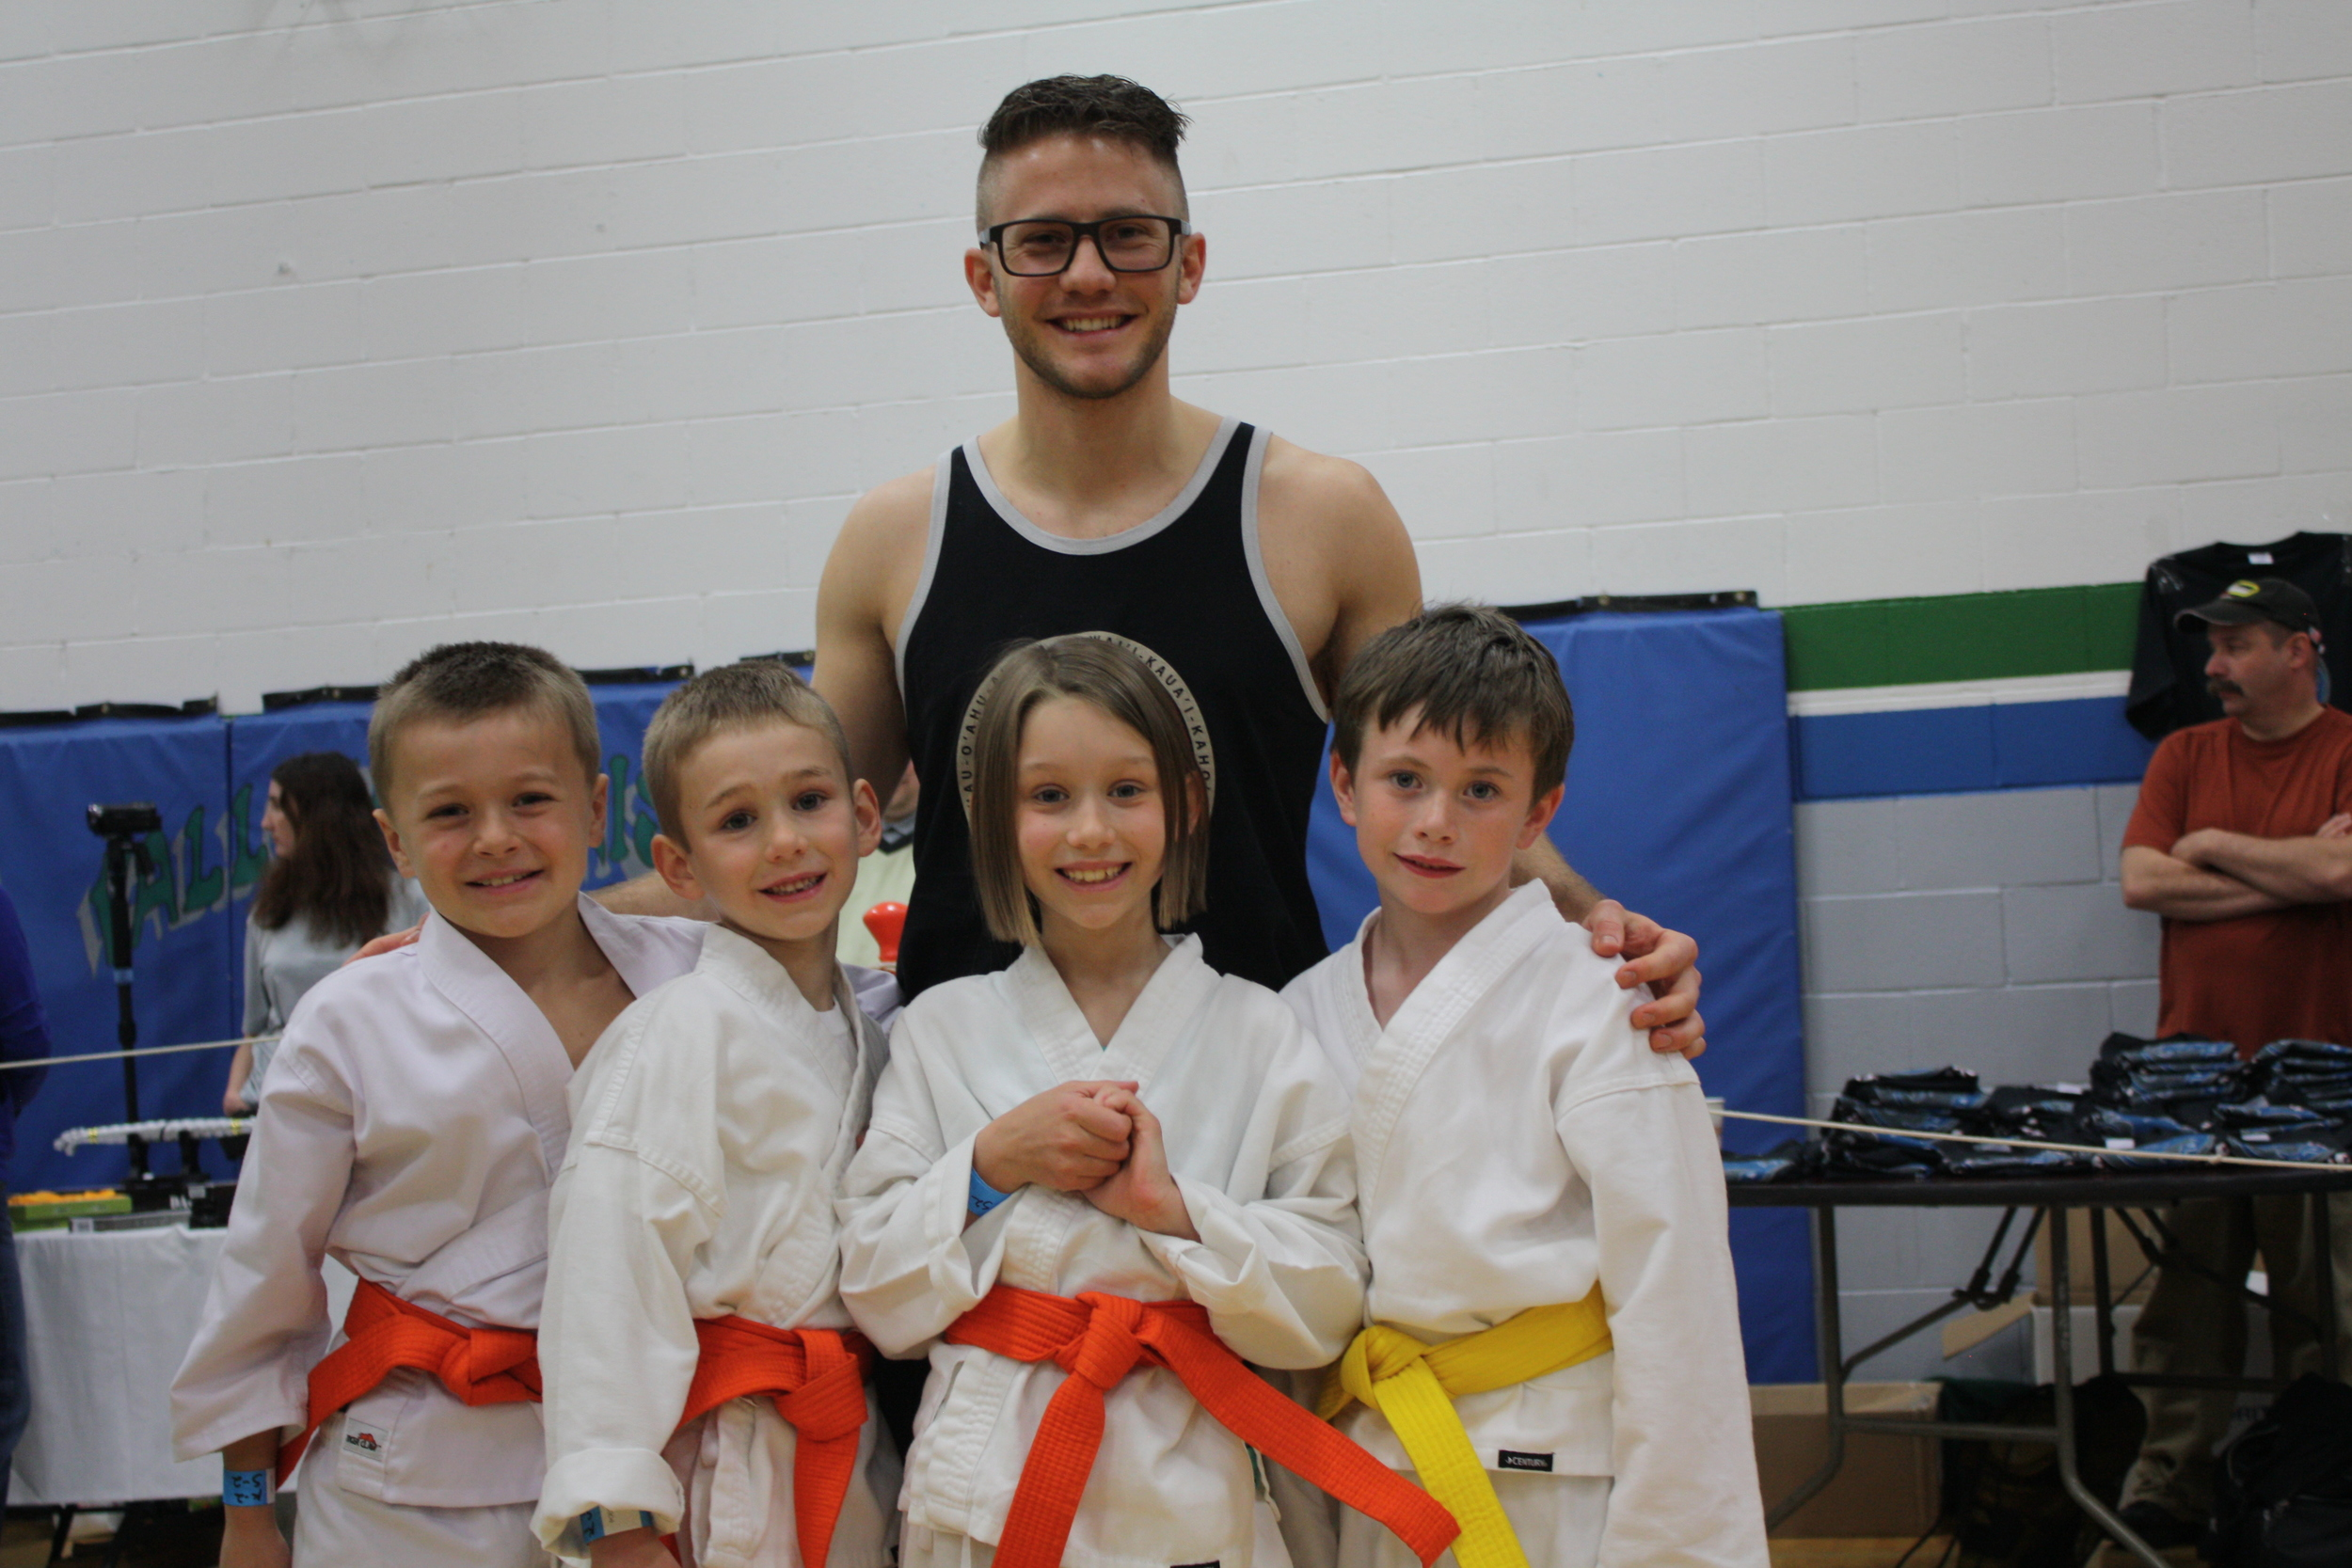 Me with my little ninjas before our tournament